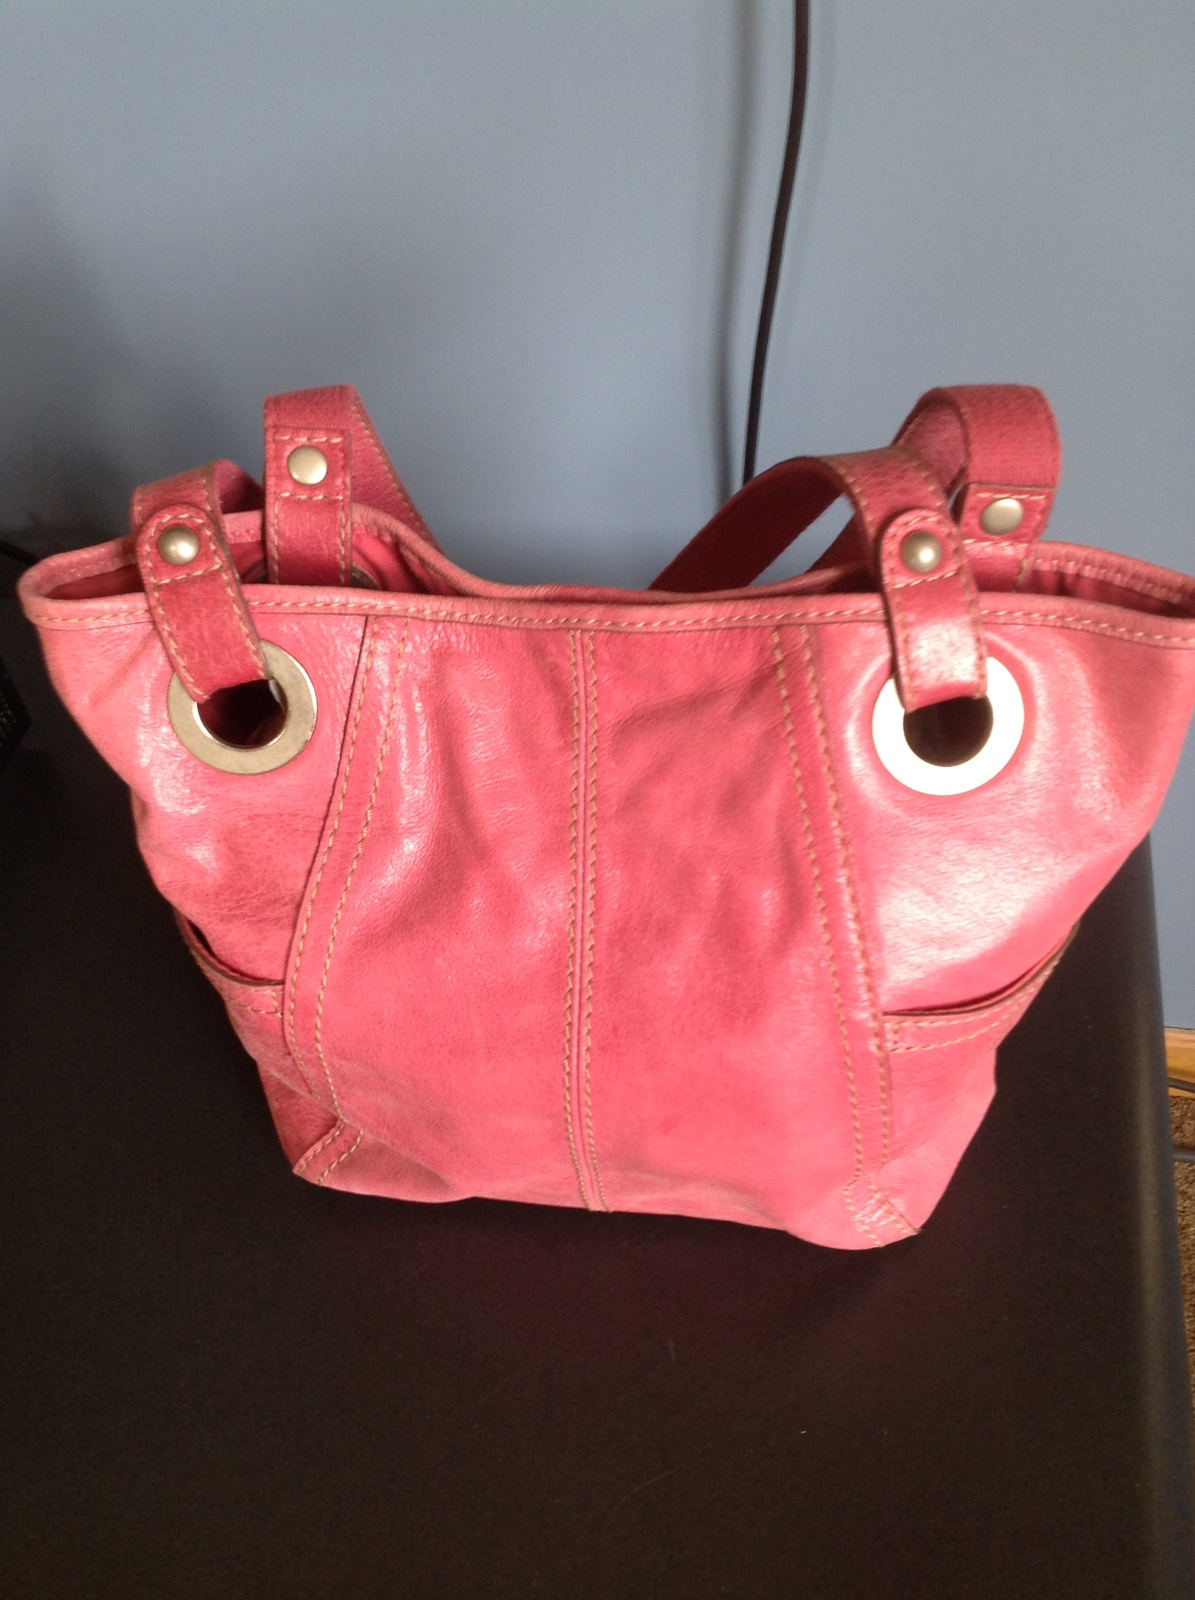 Fossil Hathaway Pink Leather Tote Handbag Purse